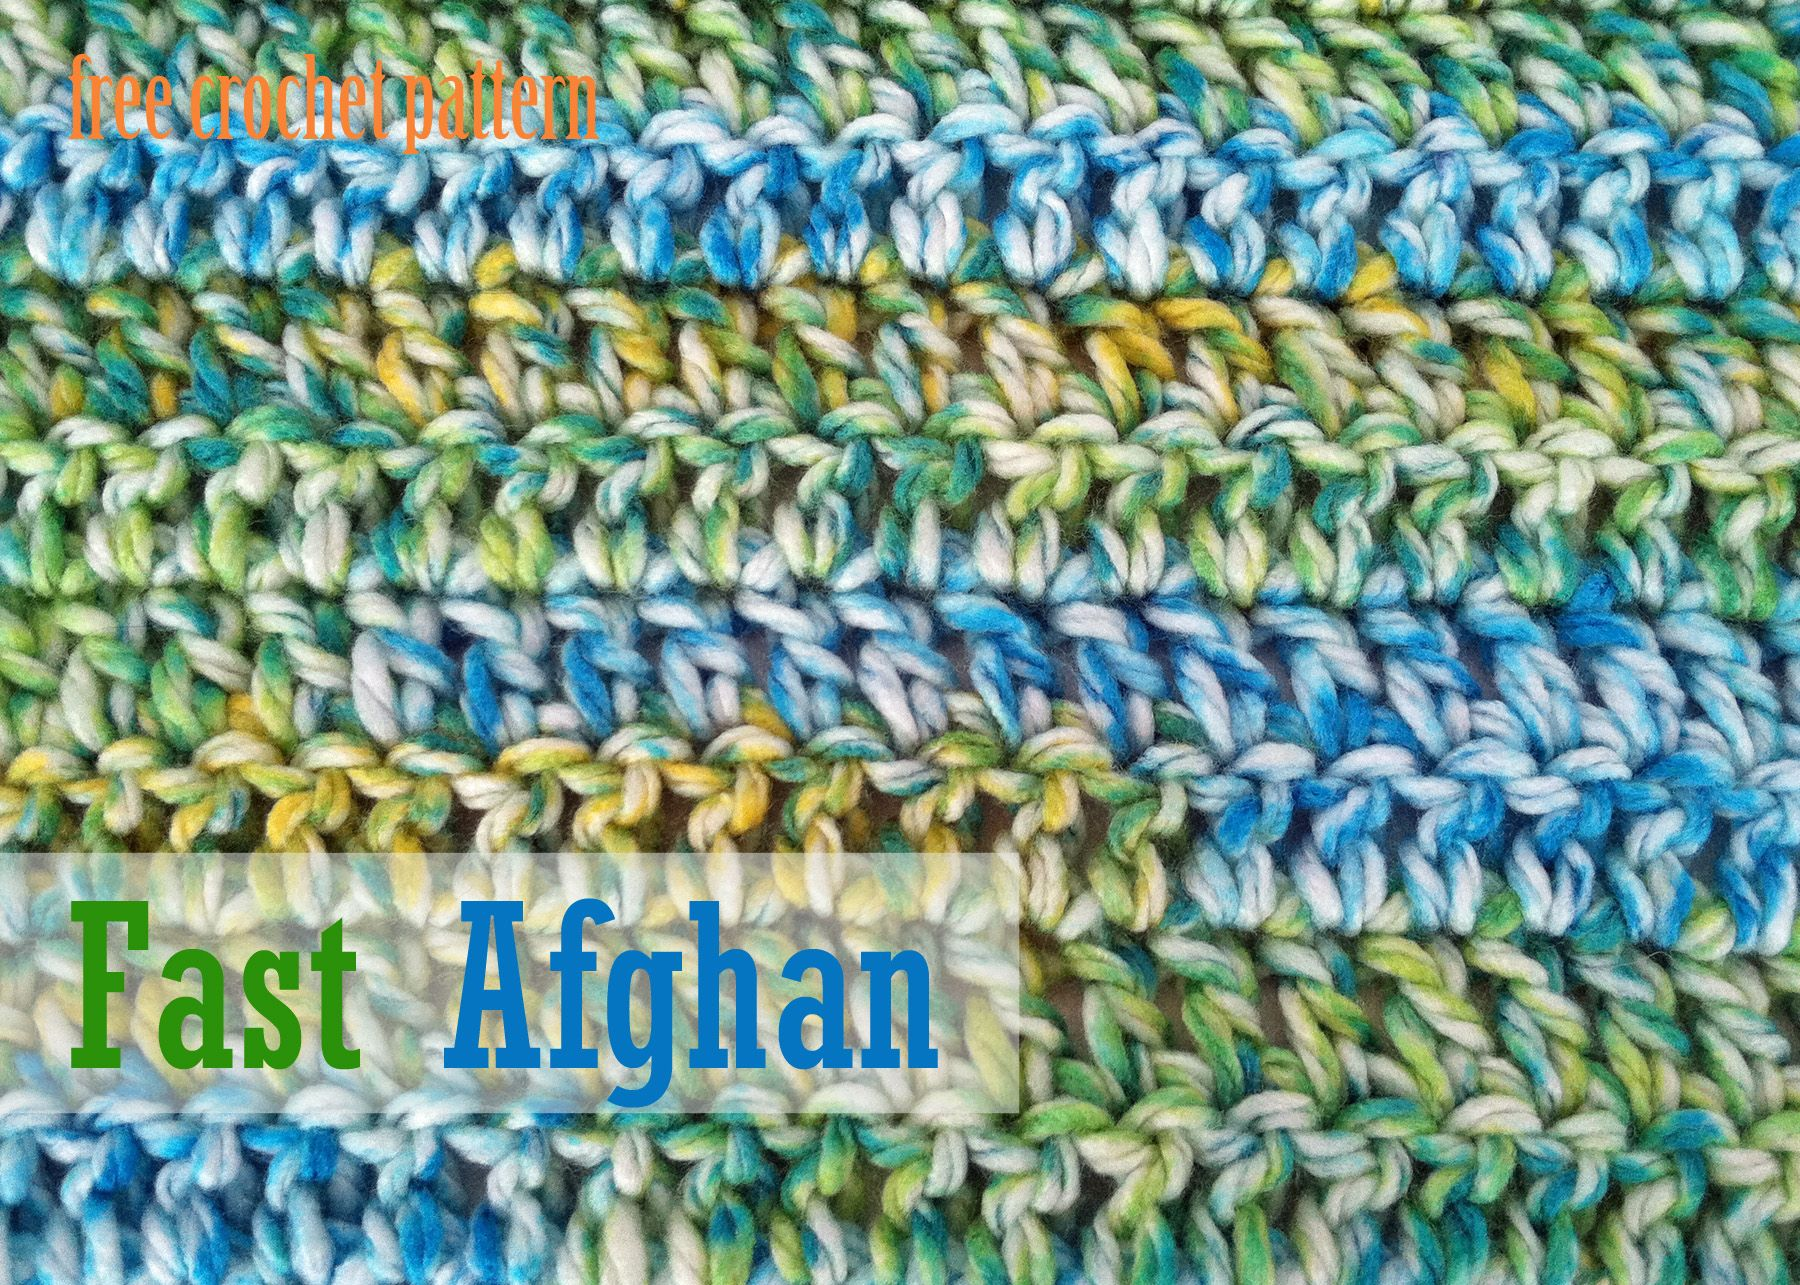 Free Quick Crochet Afghan Patterns | fast afghan fast easy and ...